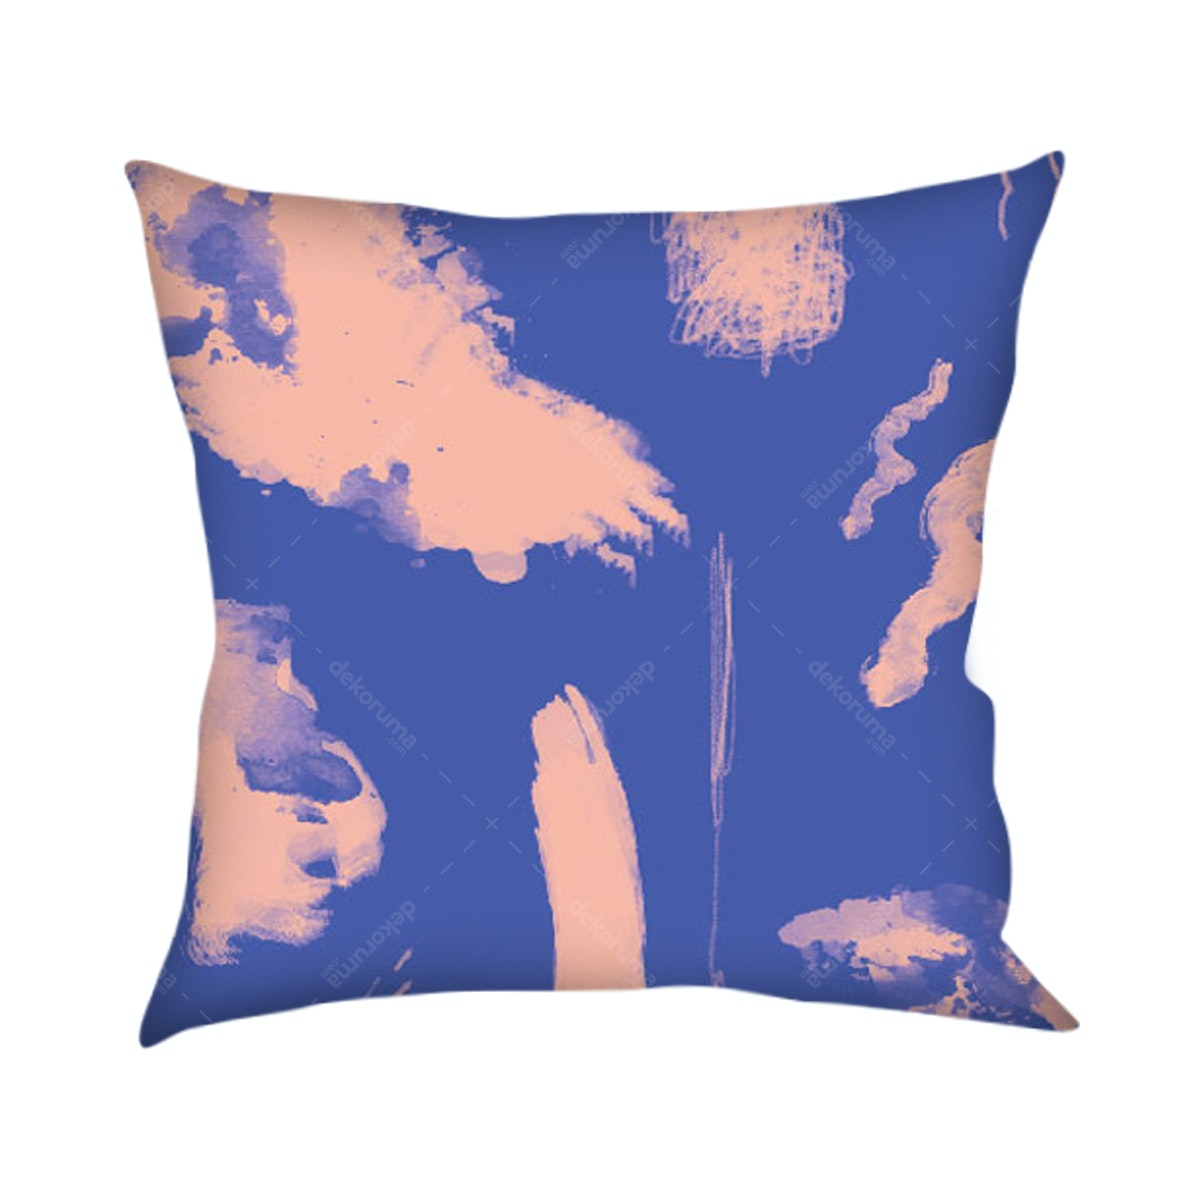 On&On Abstract Blue Pink Cushion 40x40cm (Insert+Cover)